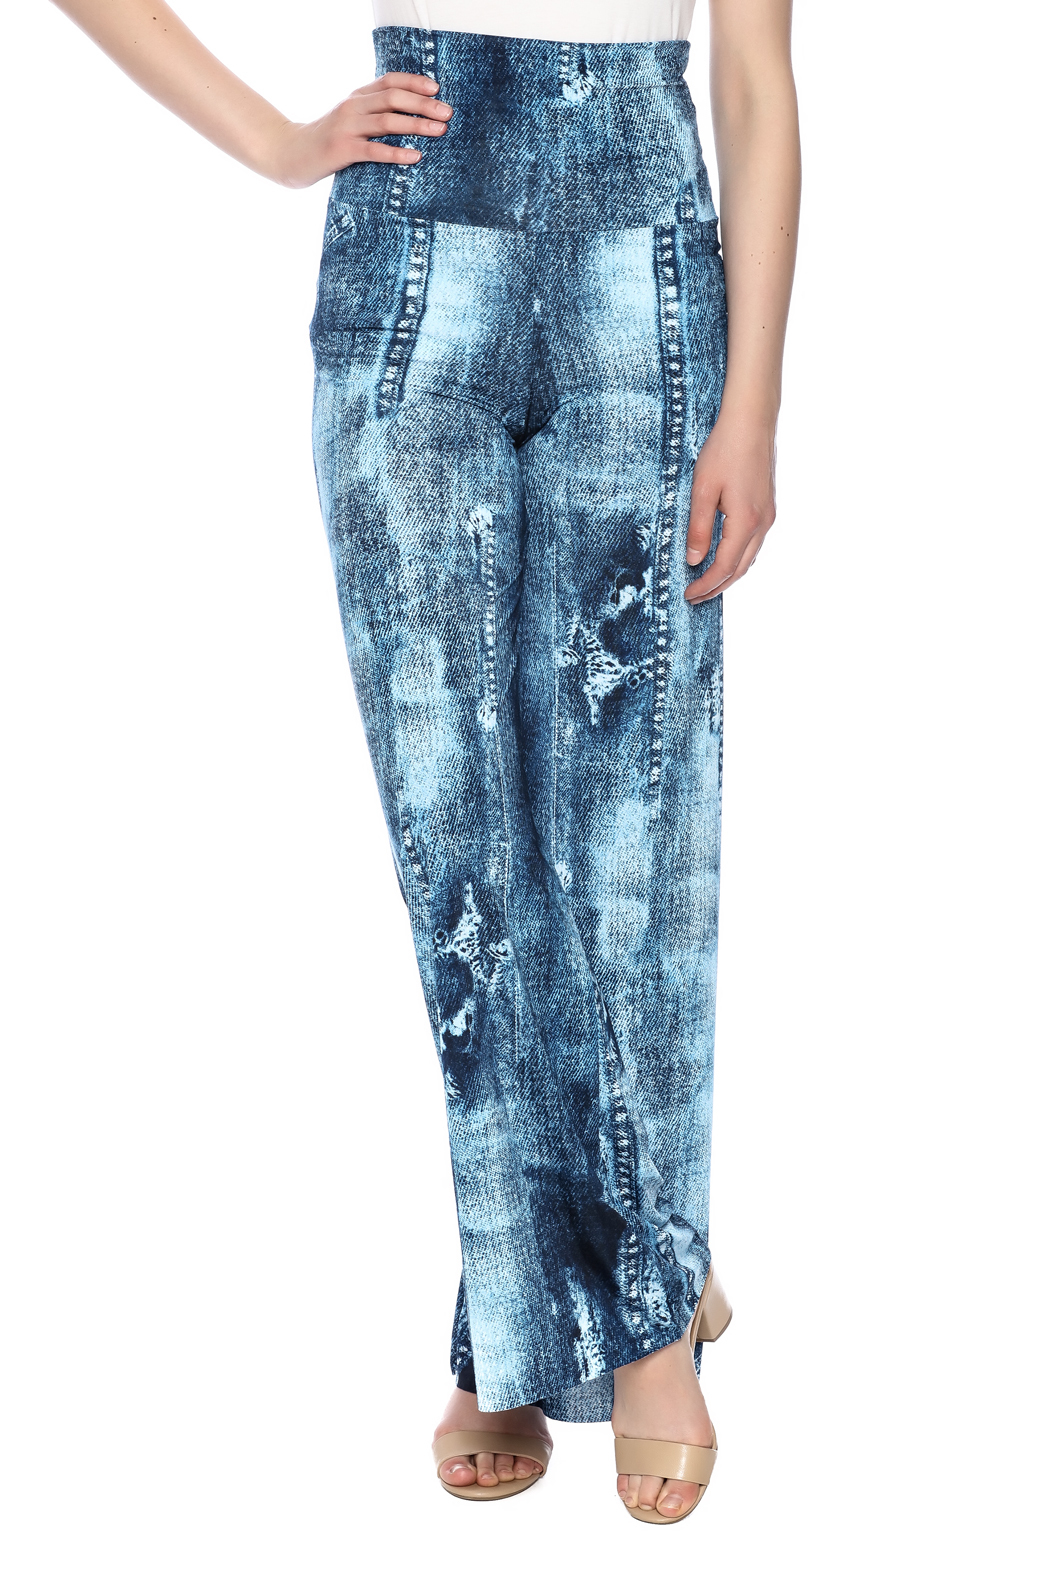 Crystal Art Designs Denim Palazzo Pants - Main Image